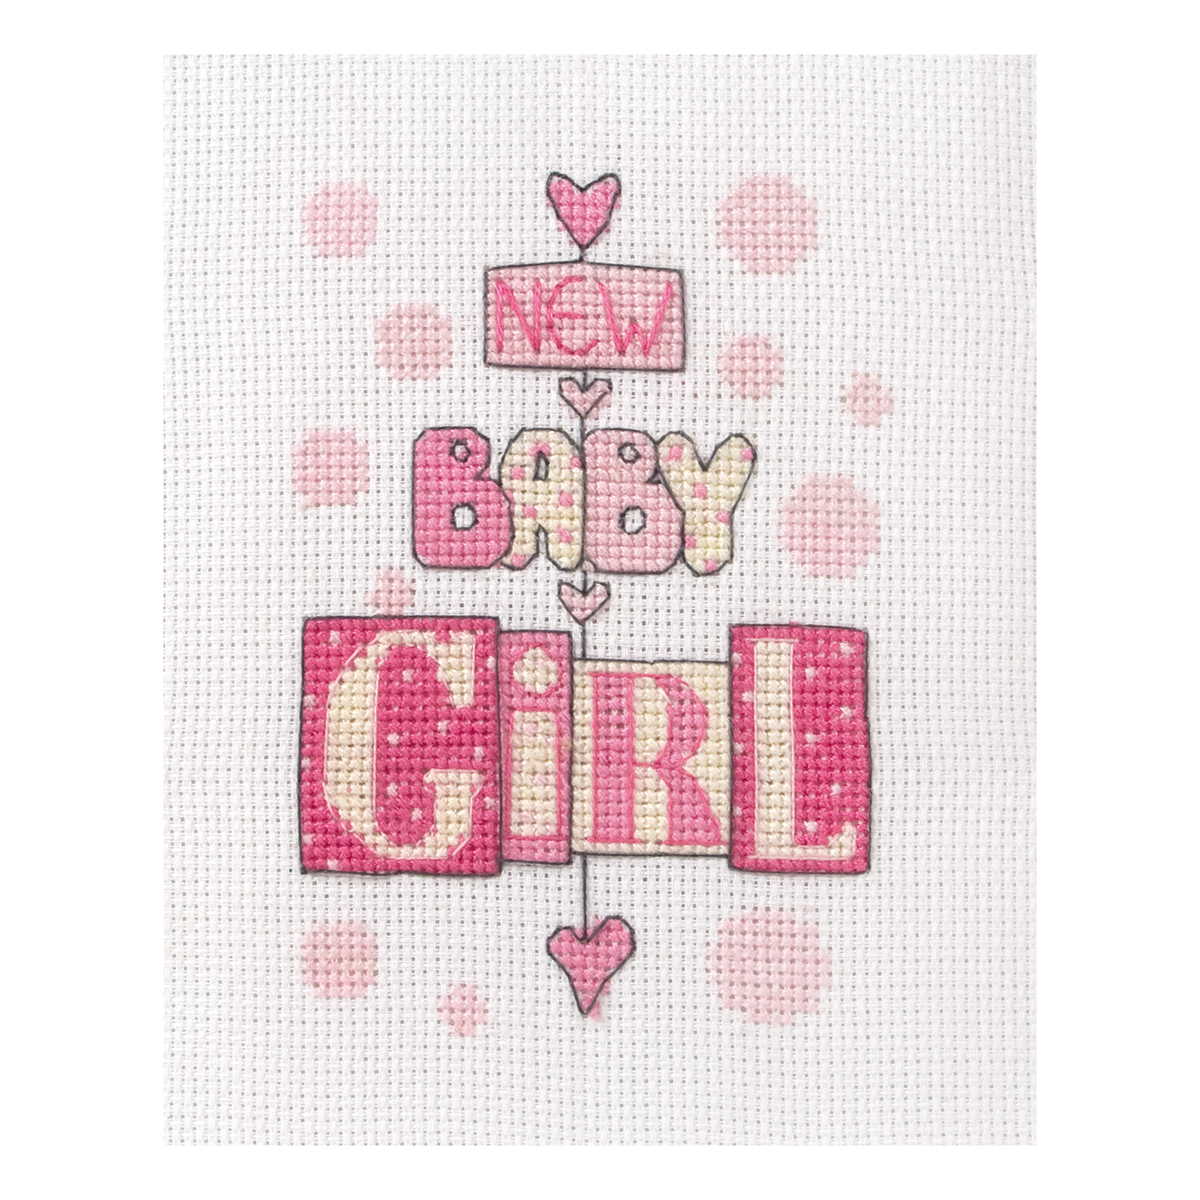 cross anchor girls Baby & children afghans, blankets & quilts whether you're looking to stitch as a gift or for your child we have a precious cross stitch kit to suit your needs.